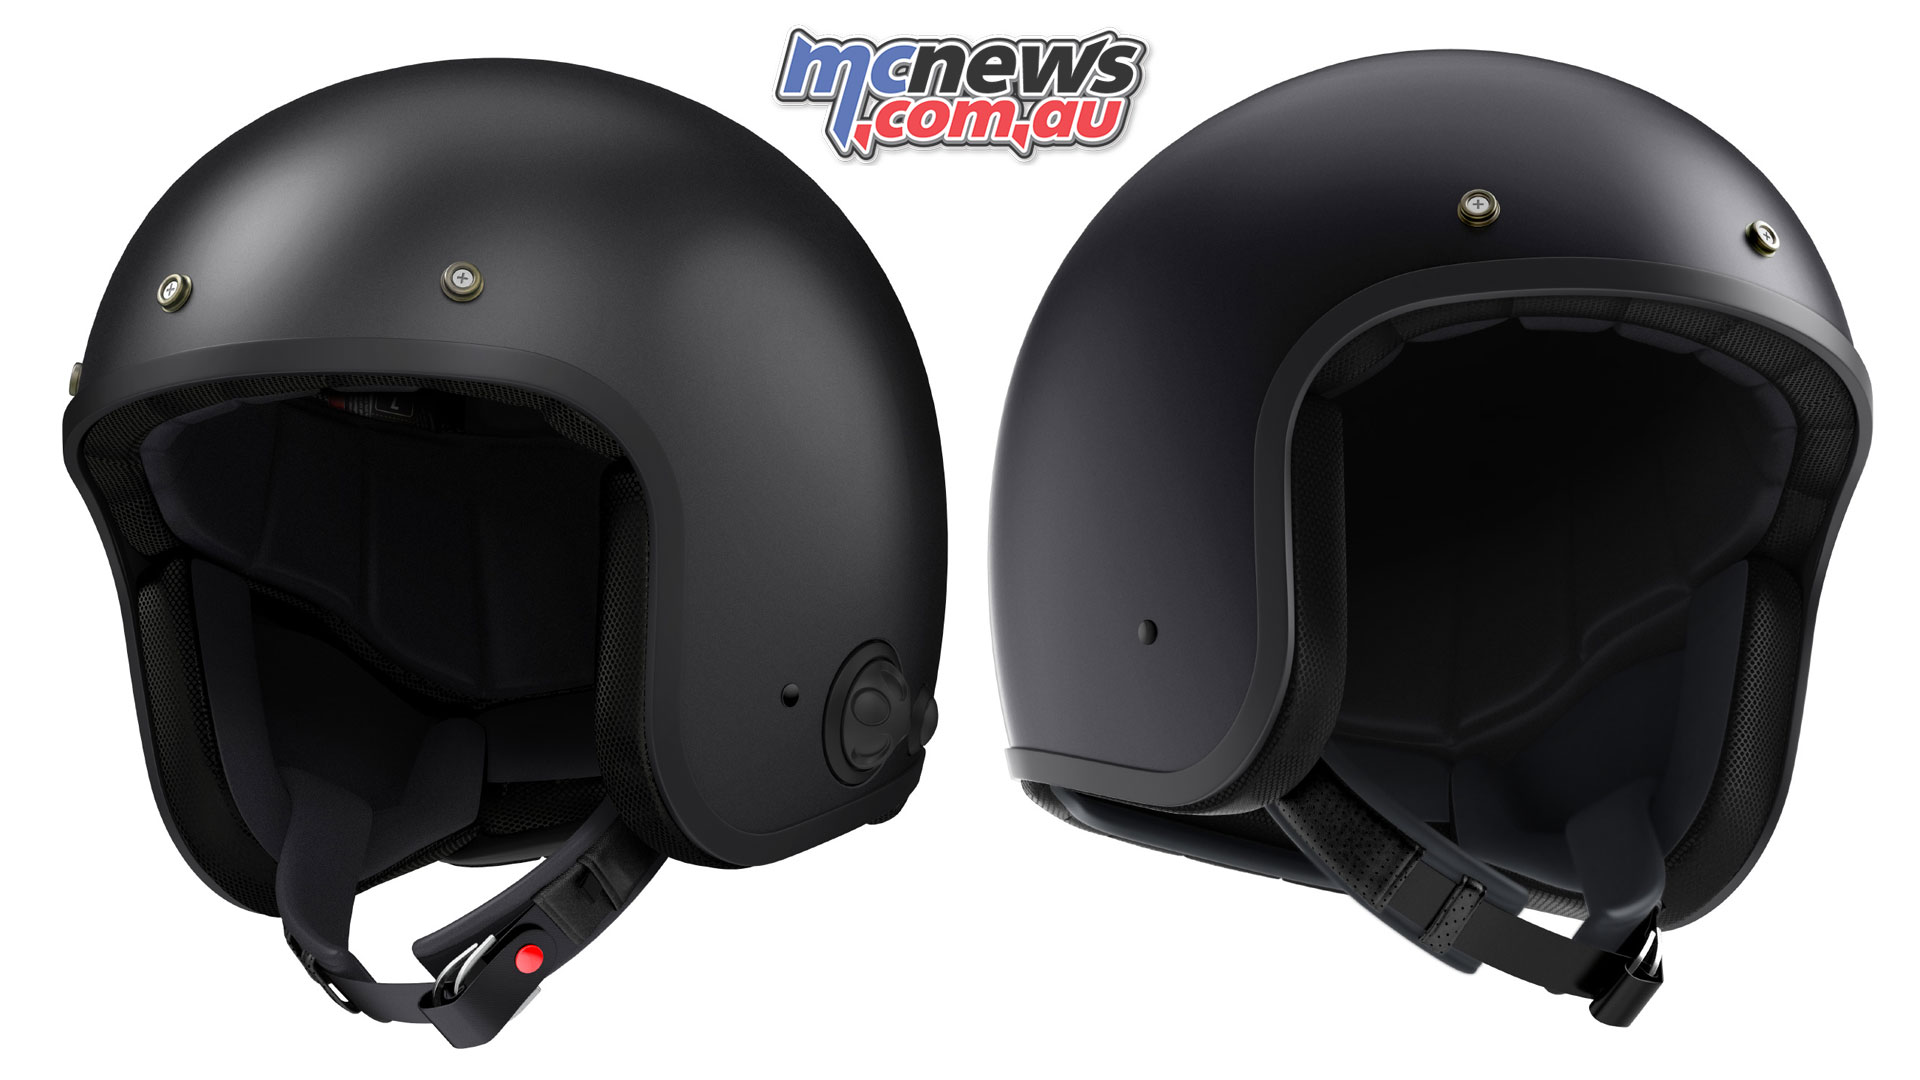 Sena Savage | Open face helmet with built-in communications